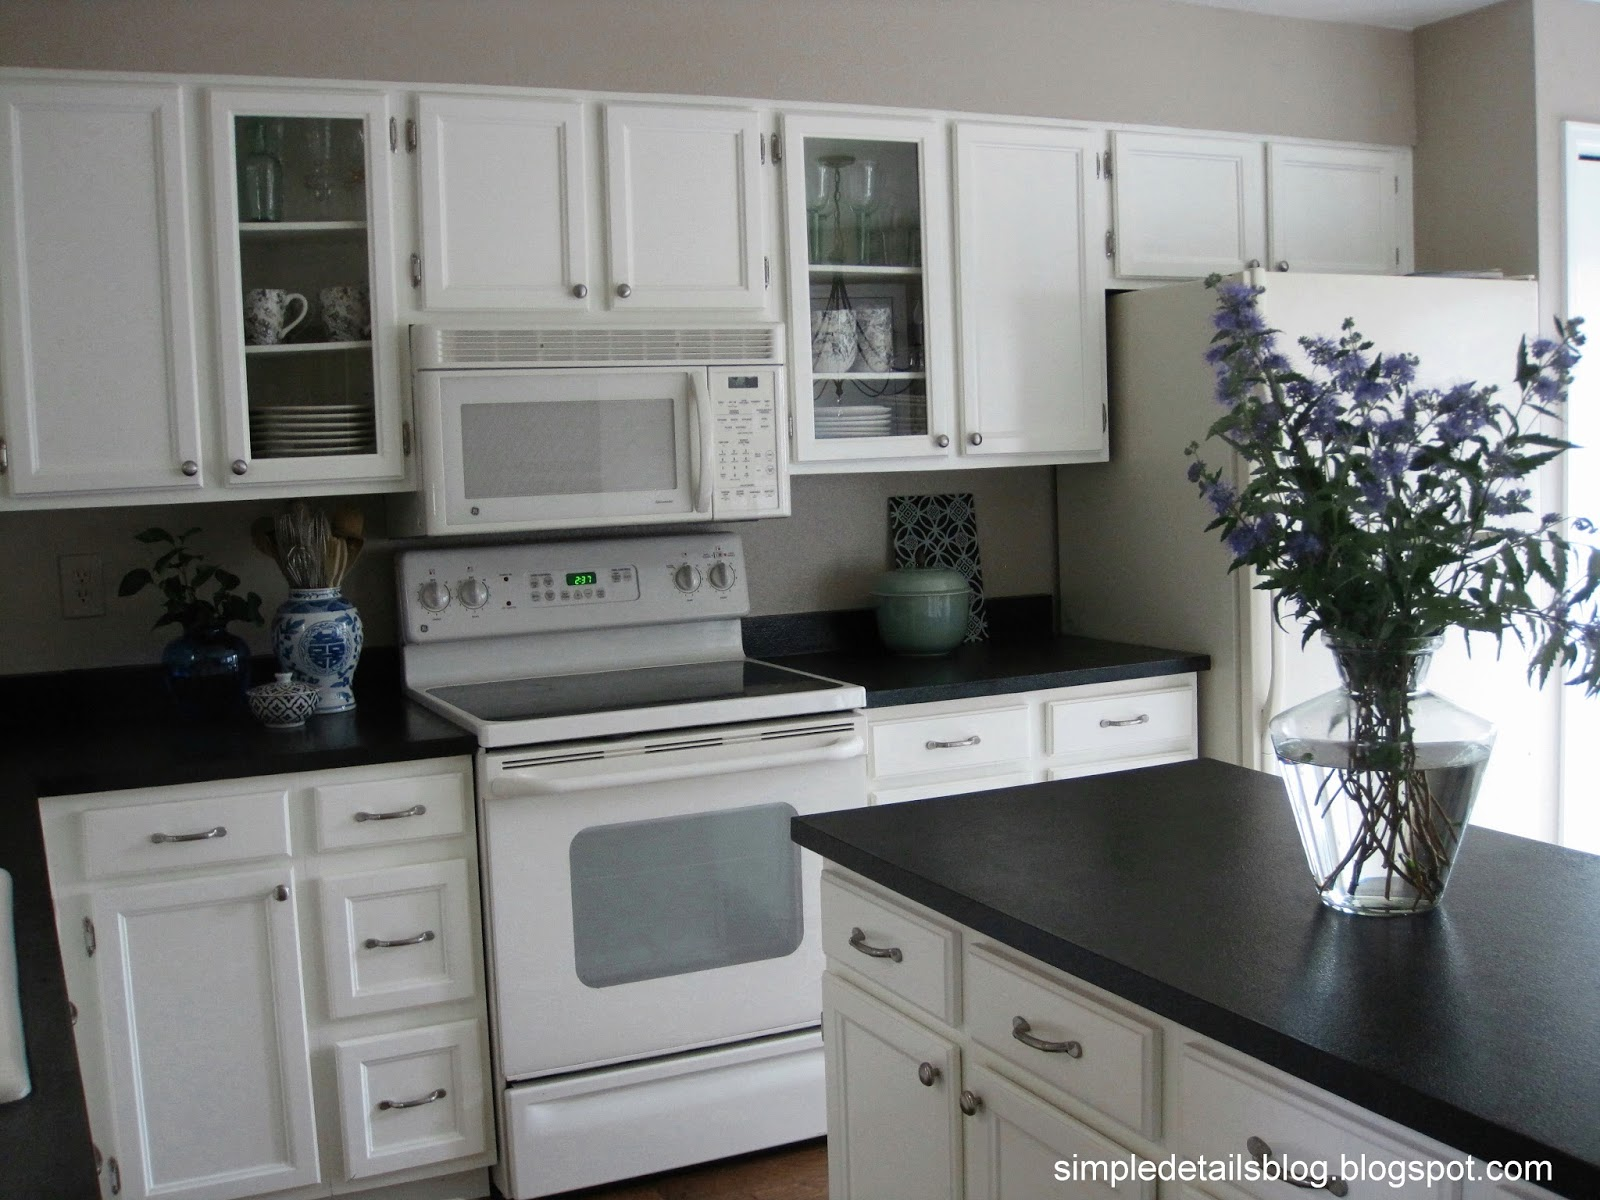 Simple Details 80 S Tract Home Kitchen Makeover